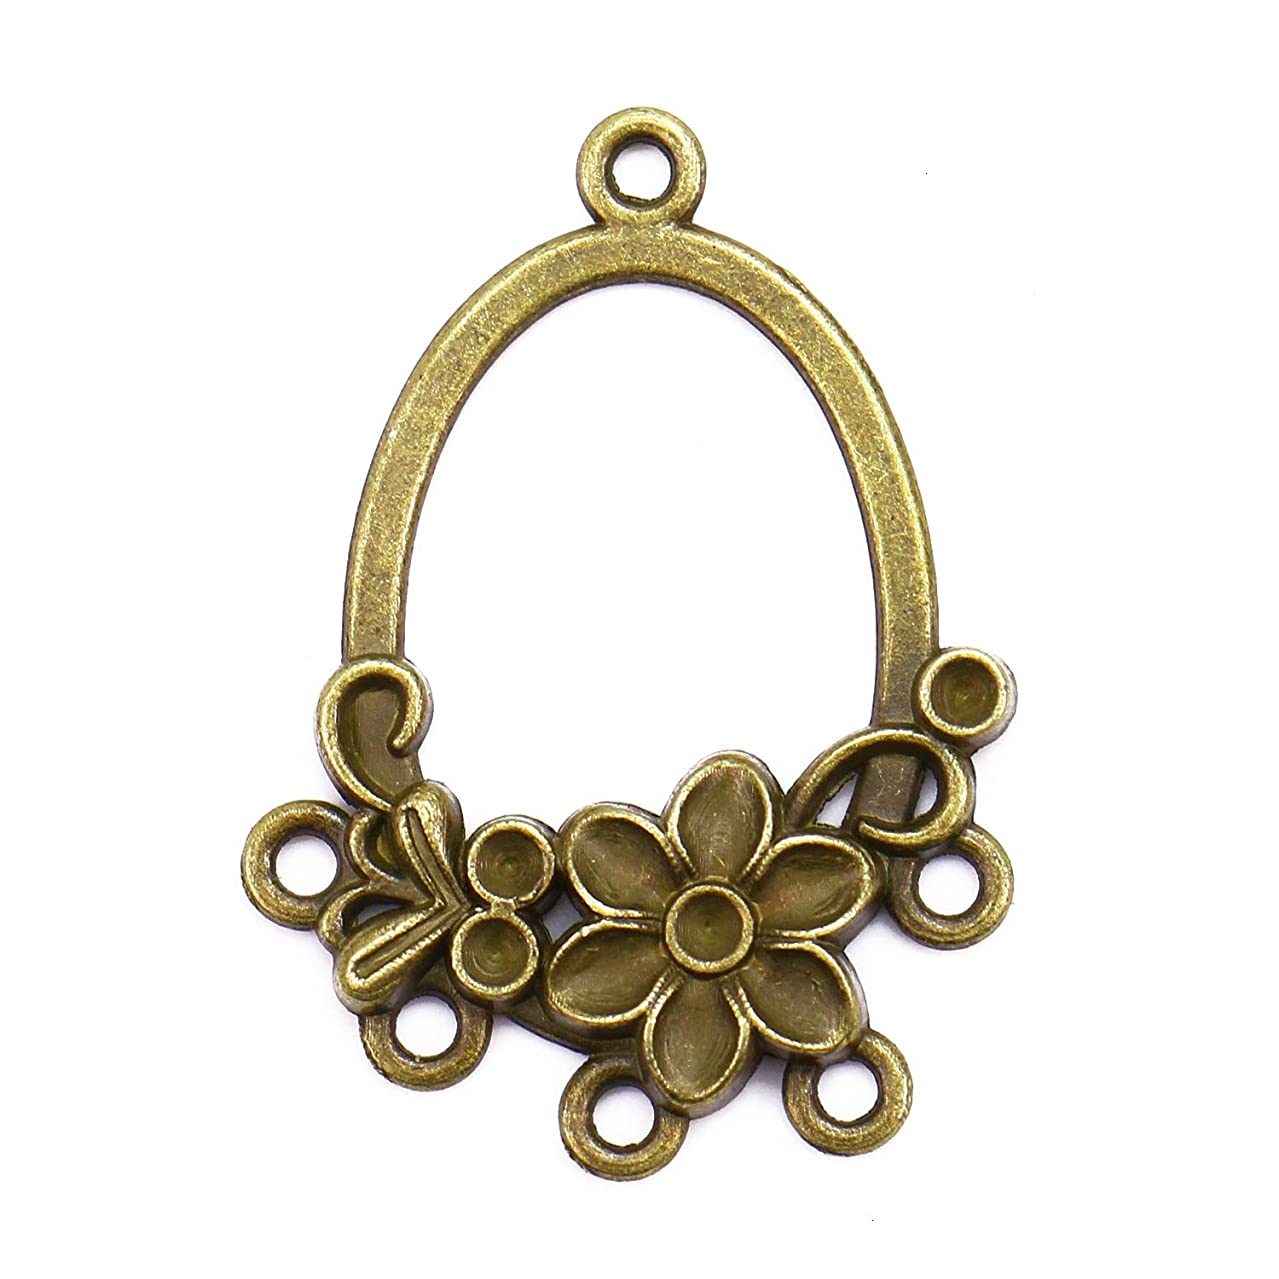 Monrocco 40 Pcs Antique Bronze Earring Chandelier Connectors Findings for Earring Drop and Charm Pendant Jewelry Findings